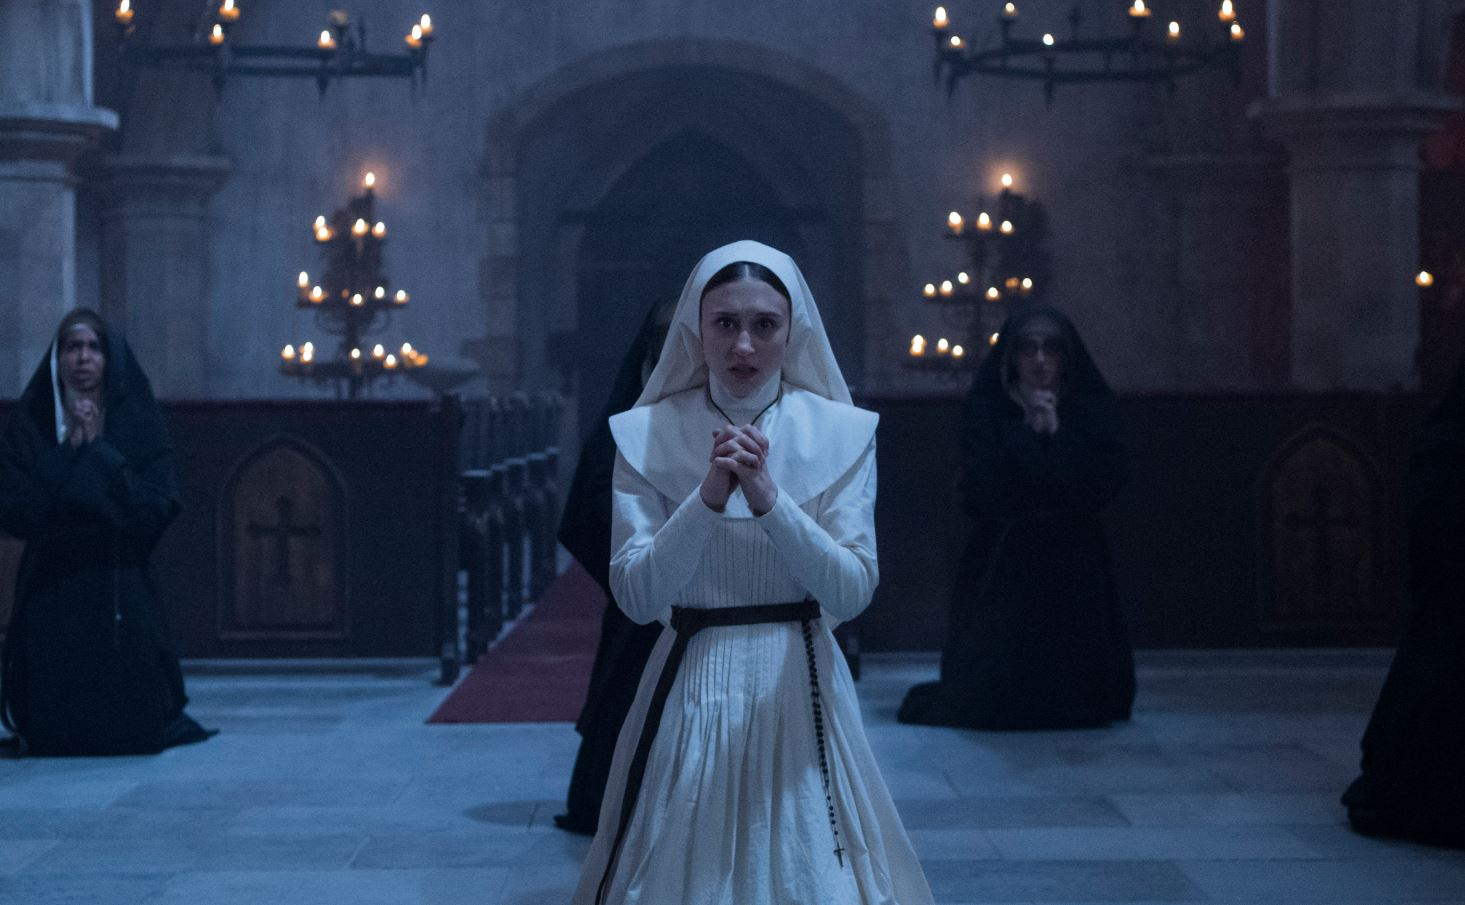 A young nun (Taissa Farmiga) kneeling in a church, praying.